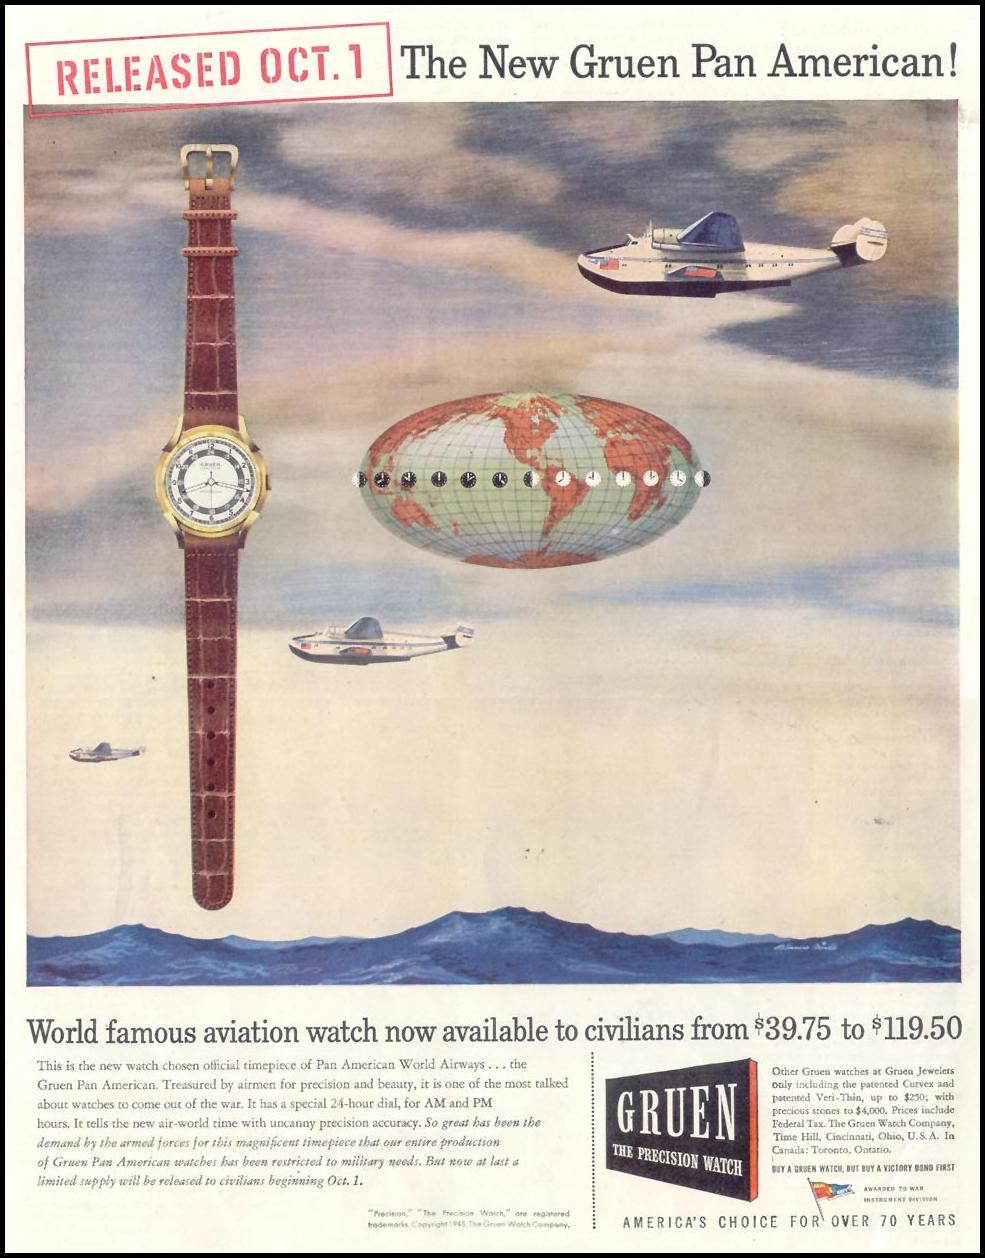 GRUEN PAN AMERICAN WATCHES SATURDAY EVENING POST 10/06/1945